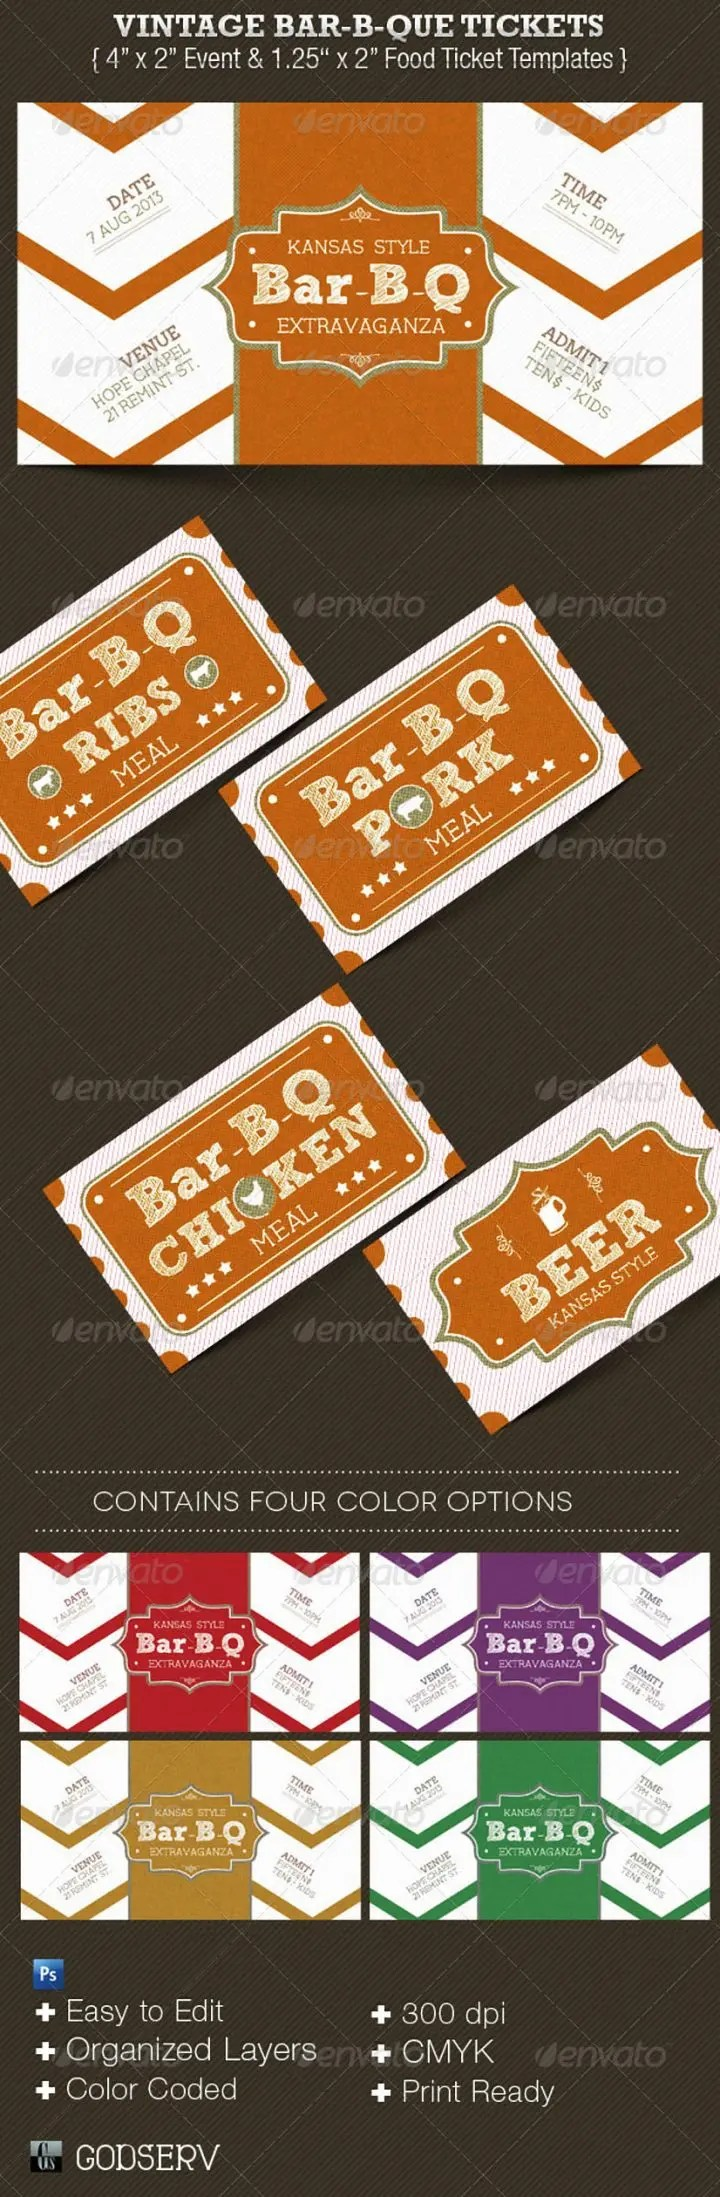 13 Appetizing Barbecue Ticket Templates PSD Vector EPS Free Premium Templates